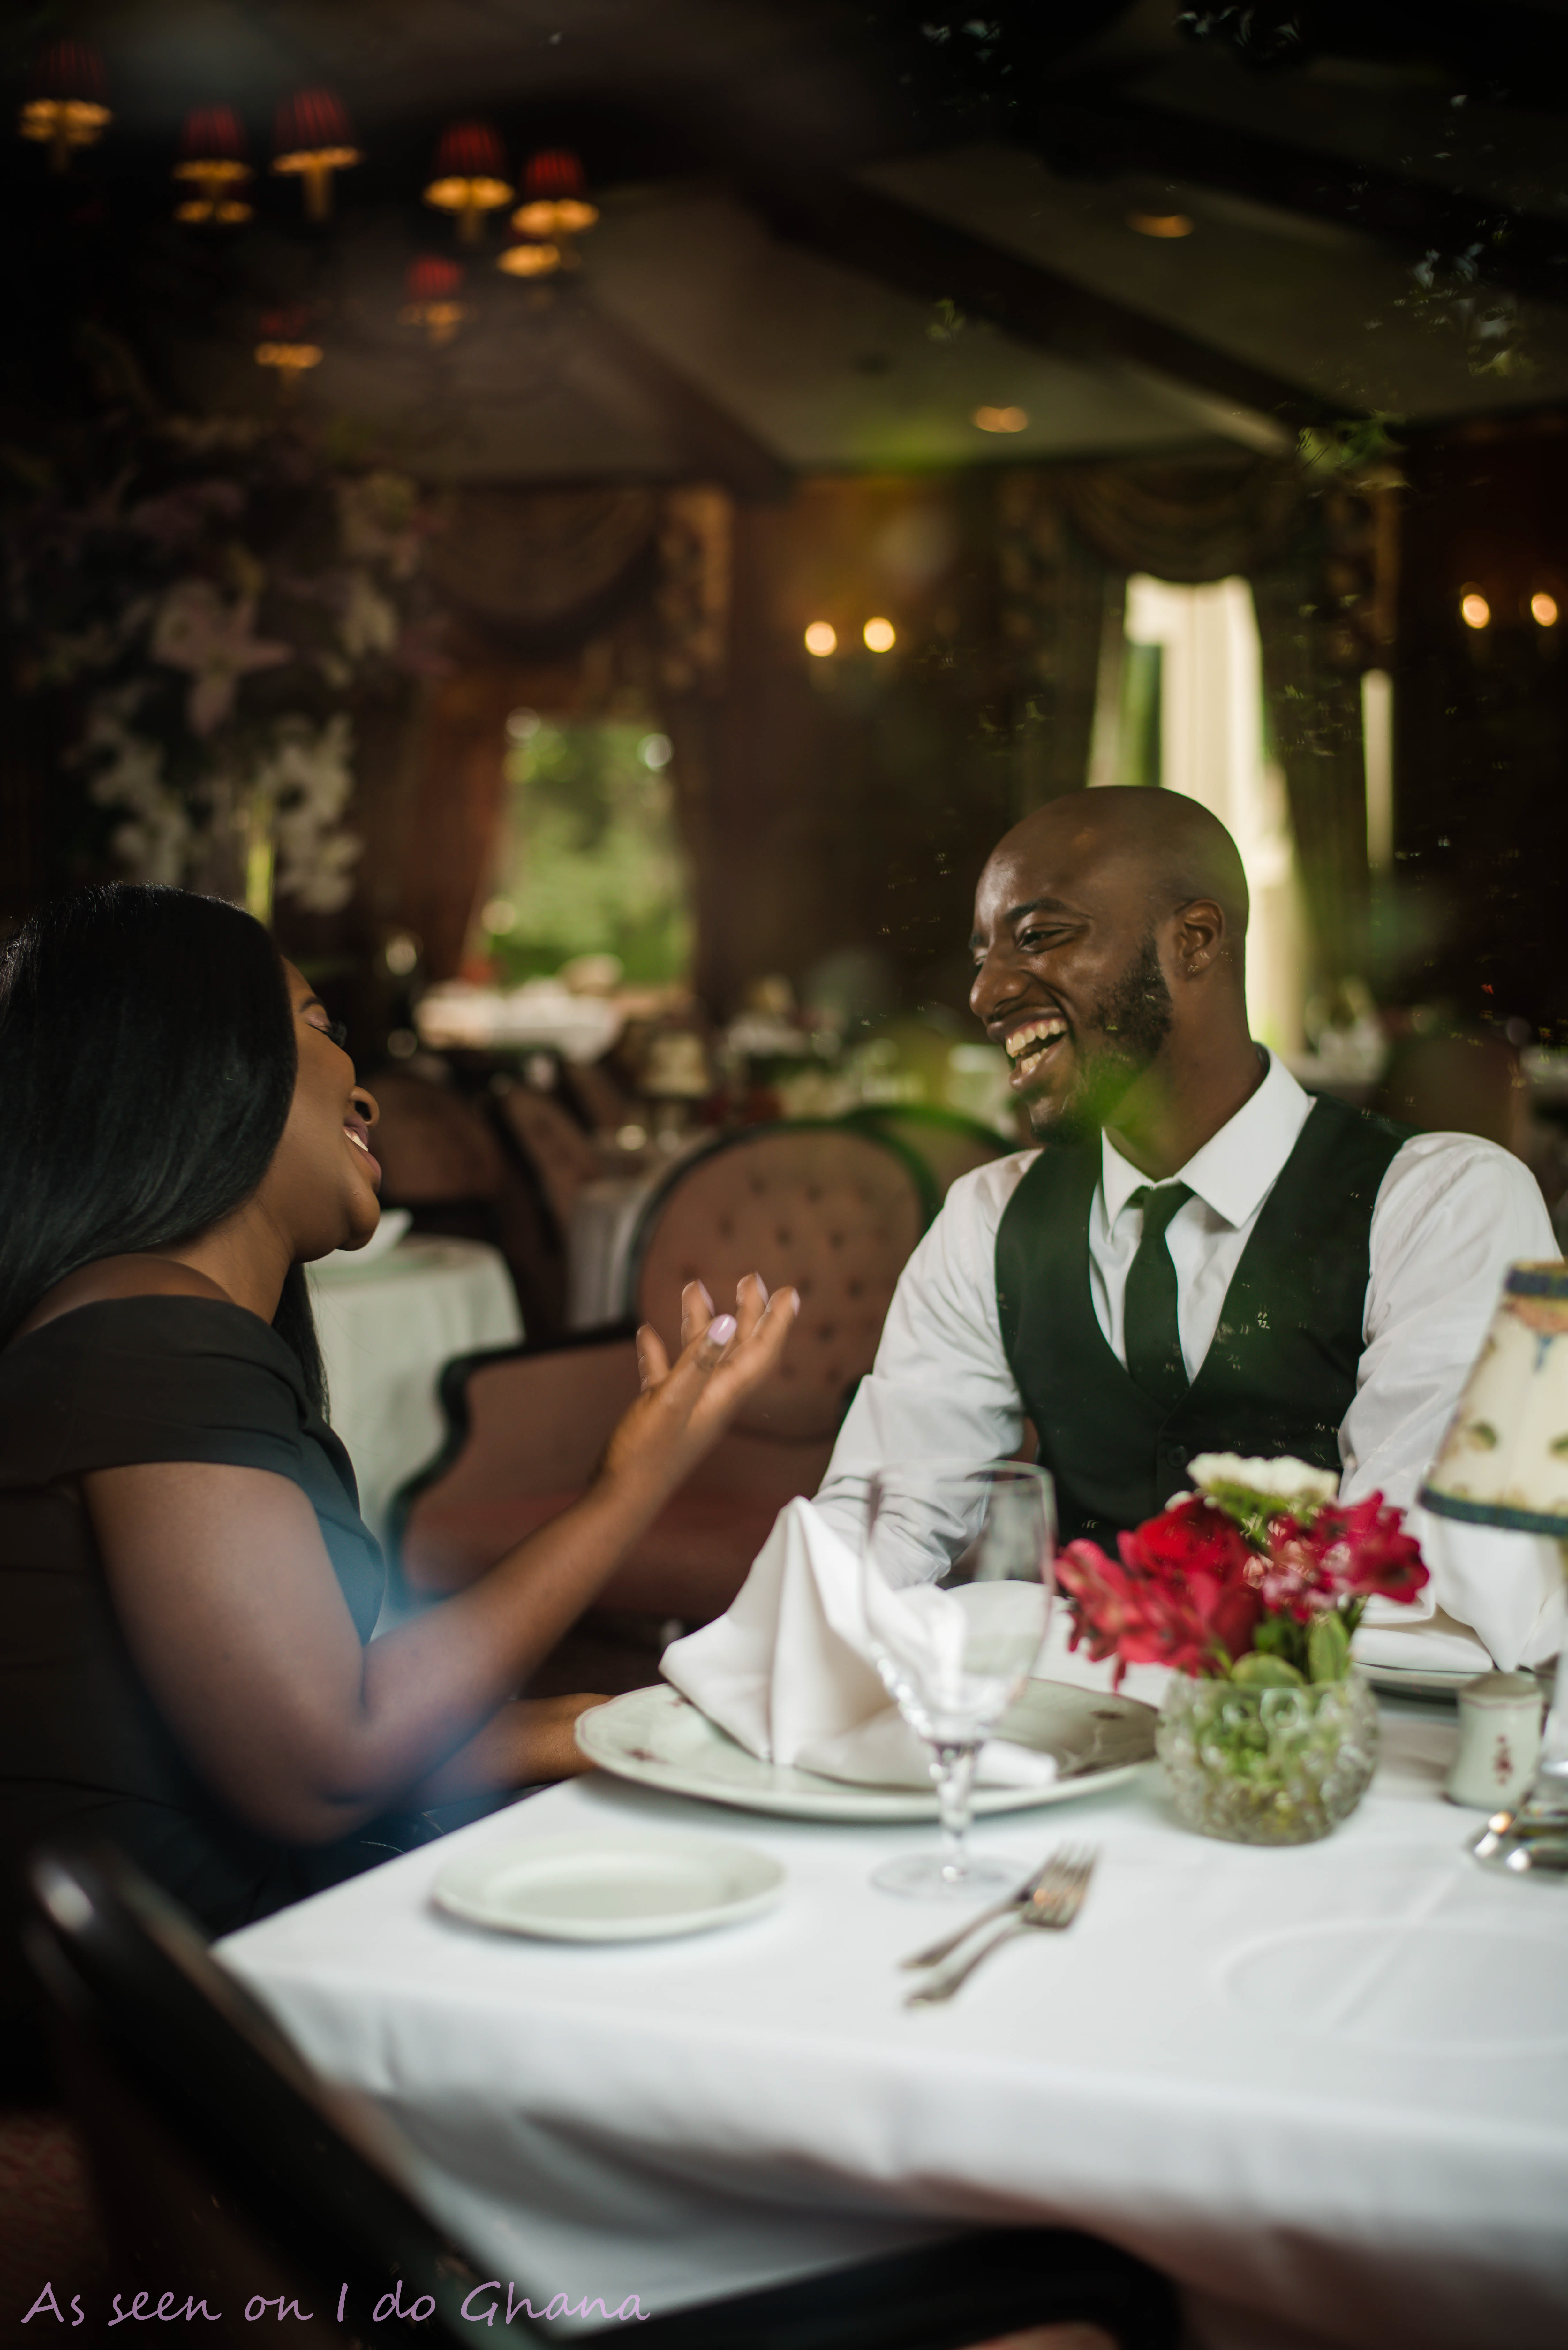 christian dating in ghana Ghana dating - these girls speak your language ghana dating is generally pretty straightforward about half of ghana's girls live in cities and so you do not have to rigorously follow some of the more traditional ghana dating mores.